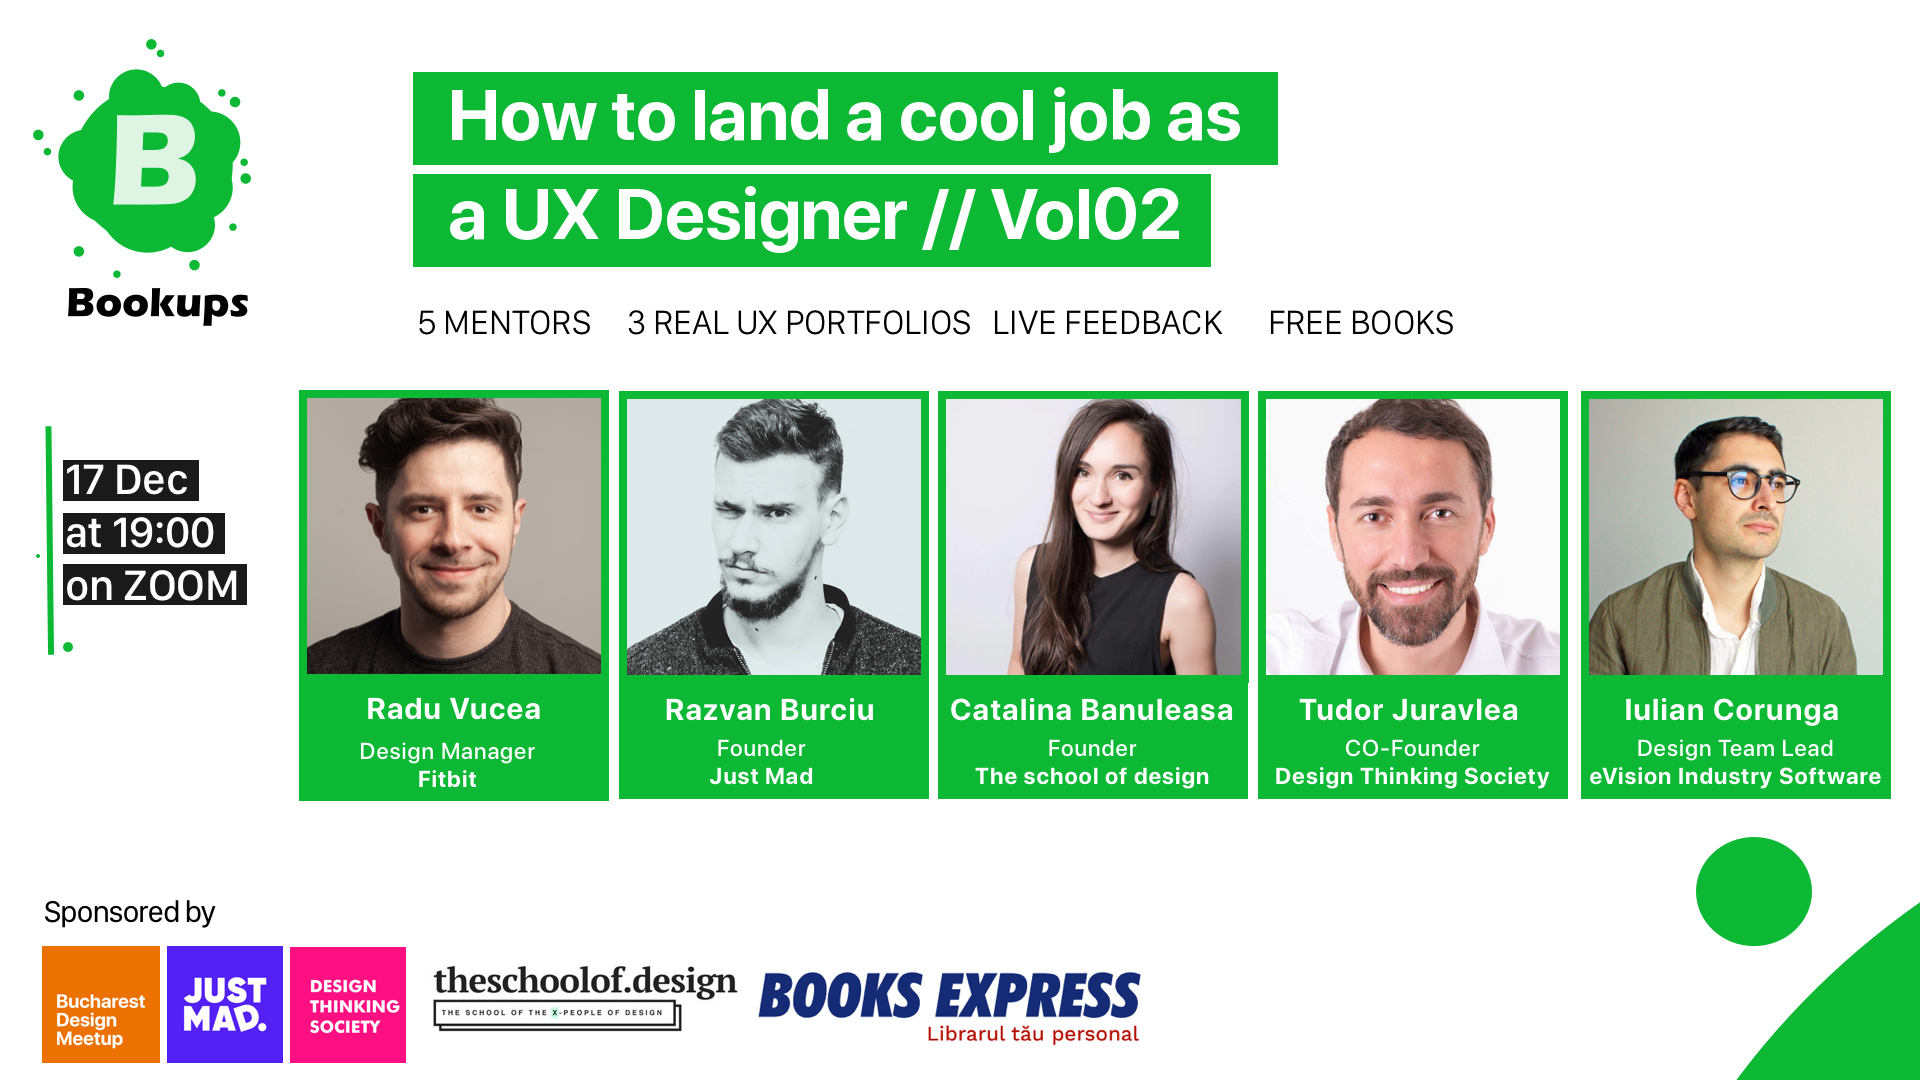 How to land a cool job as a UX Designer // Vol 02